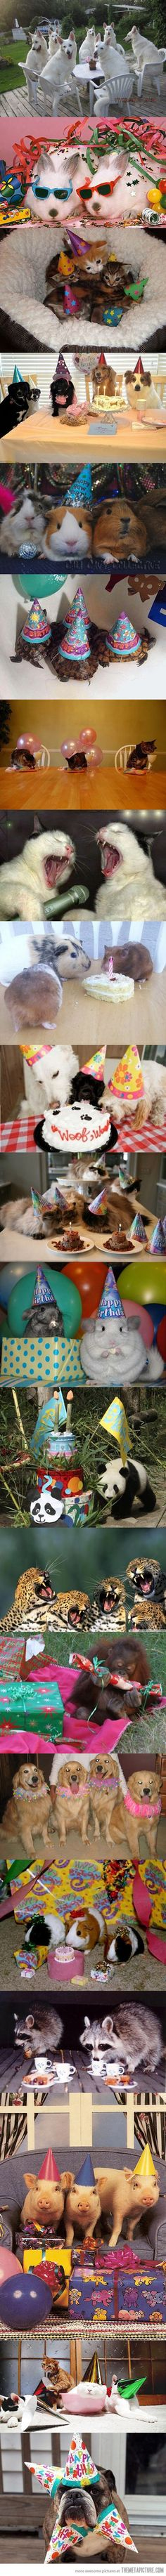 Funnest animal parties ever…